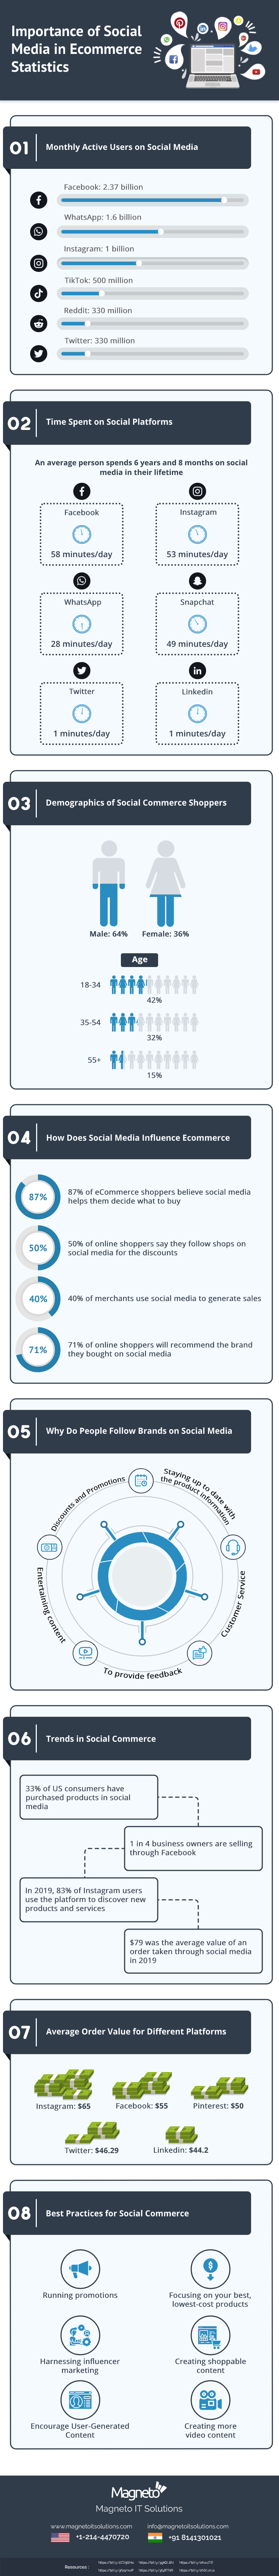 Importance of Social Media in Ecommerce - Infographic